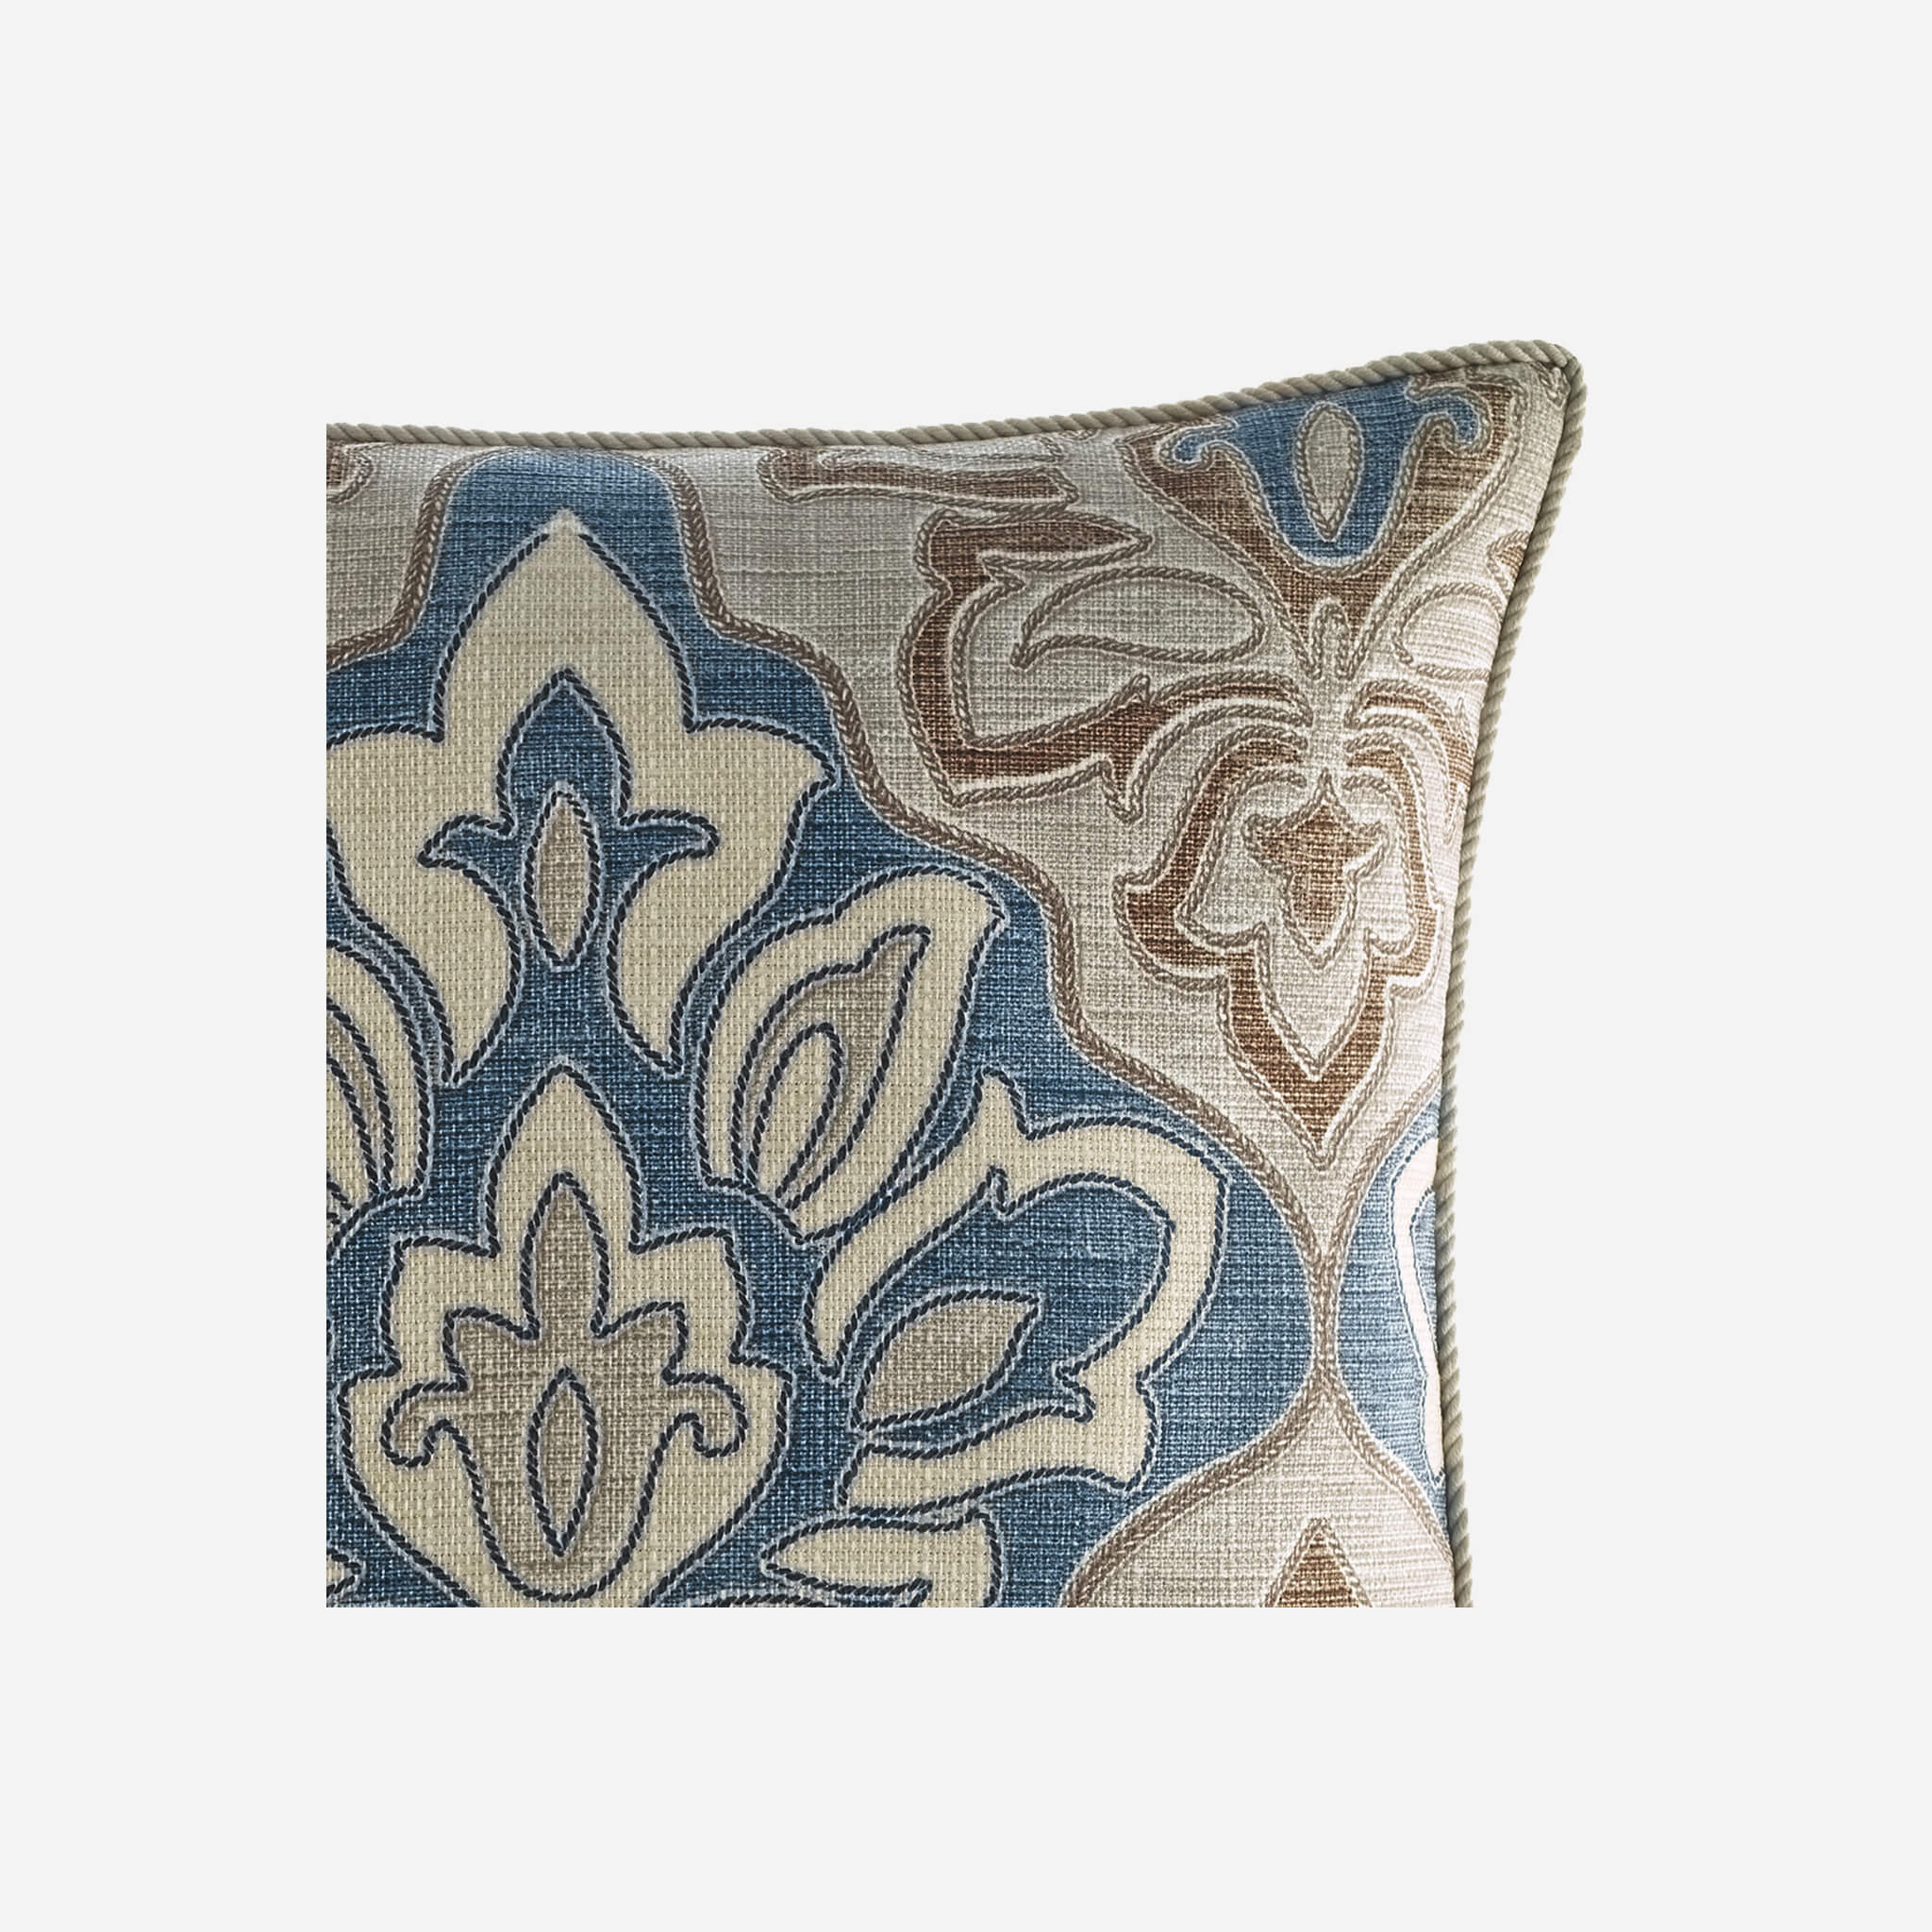 Captains Quarters Square Pillow